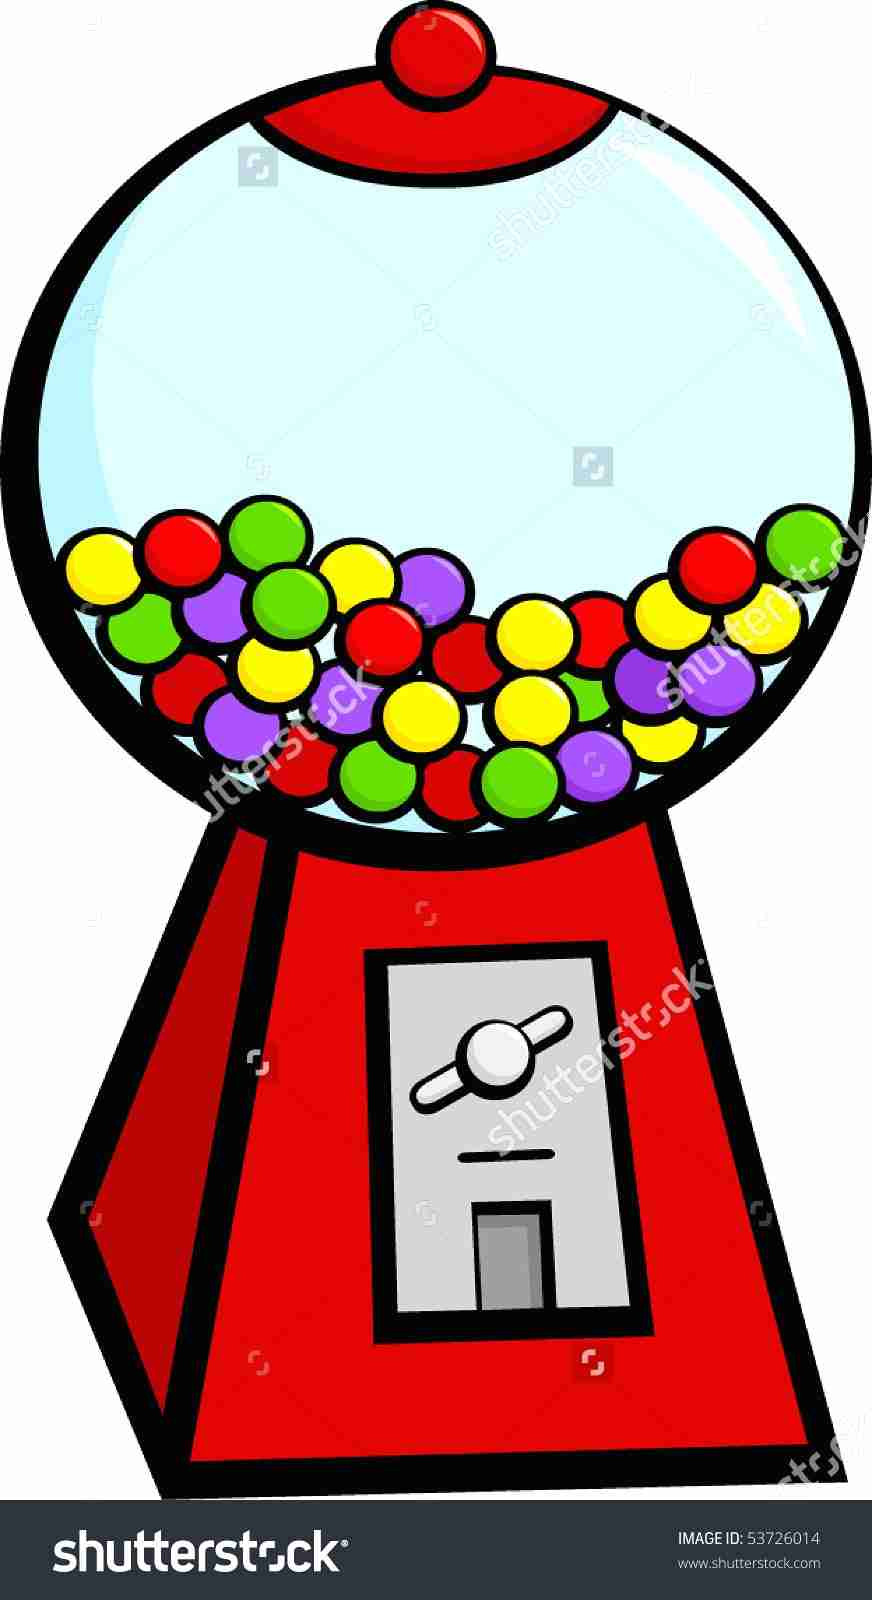 872x1600 Classic Red Gumball Machine Free Clip Art Beautiful Bubble Gum